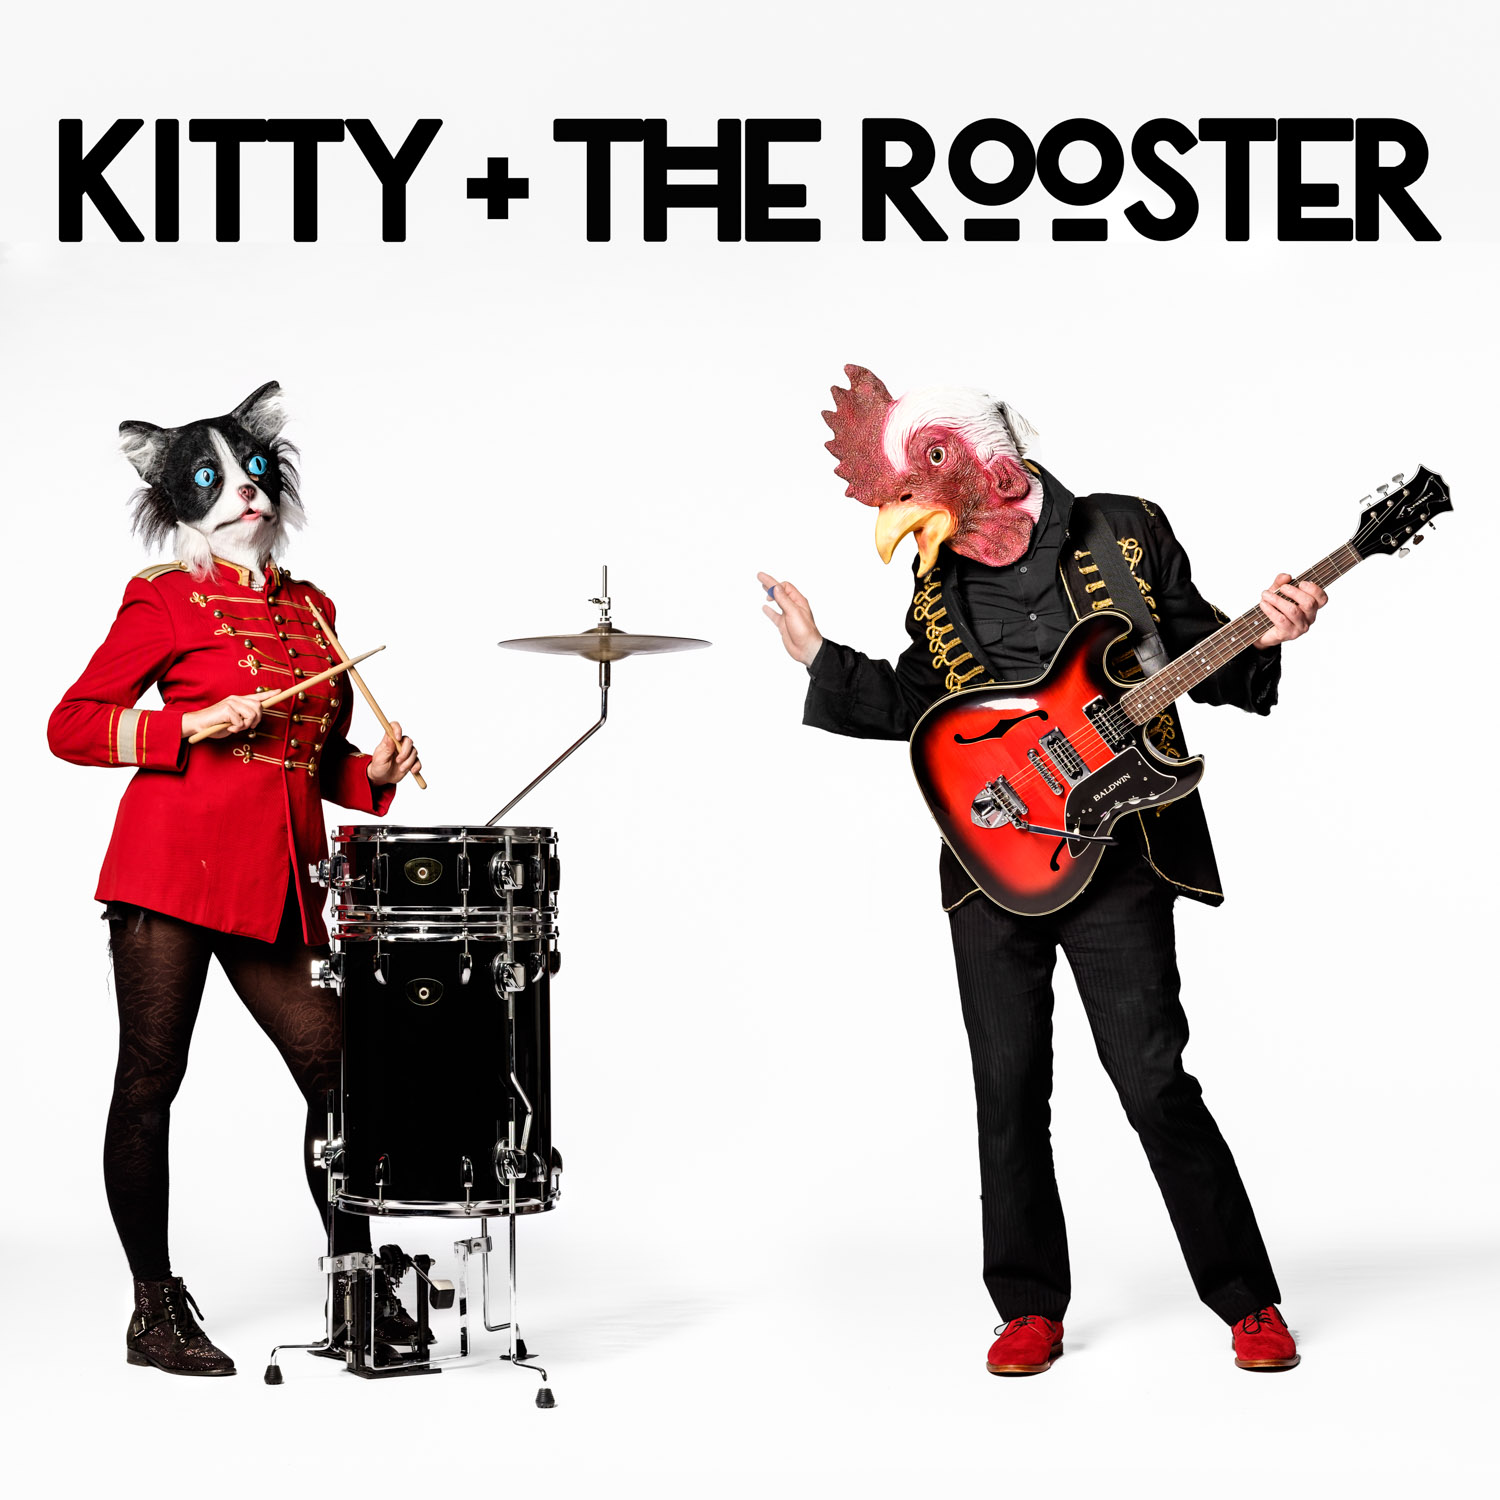 kittyrooster-square.jpg